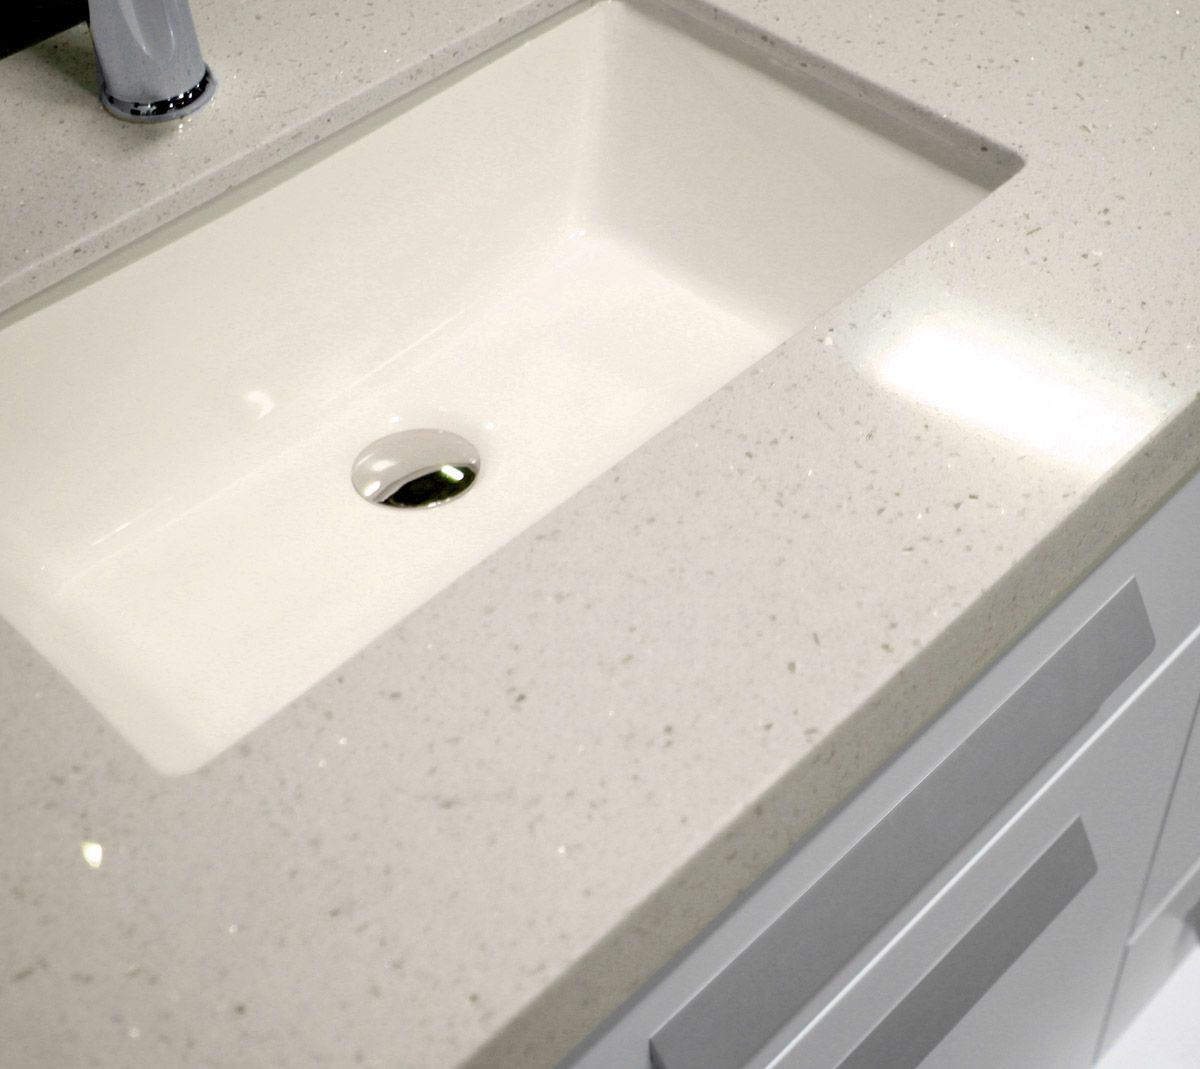 Off White Quartz Vanity Top Picks Up The Warm White Tones Of The